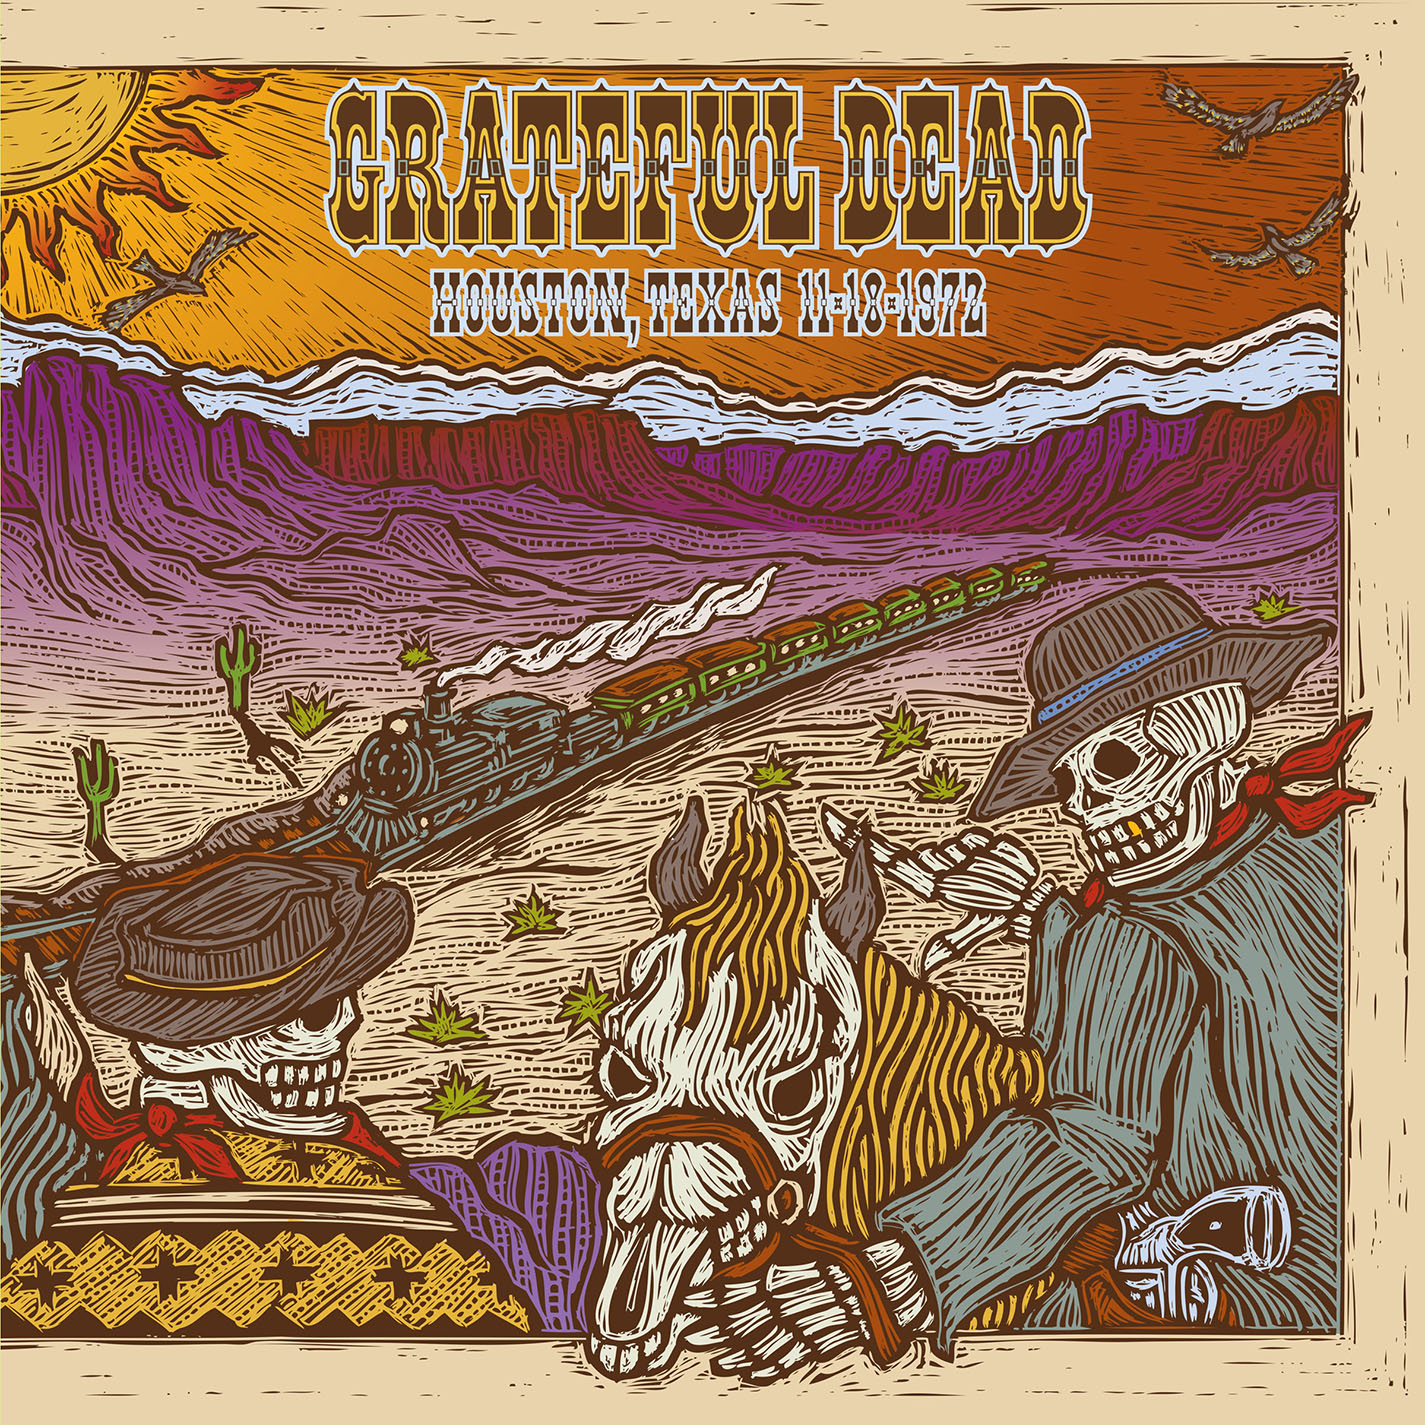 Grateful Dead - 11/18/72 Hofheinz Pavilion, Houston TX